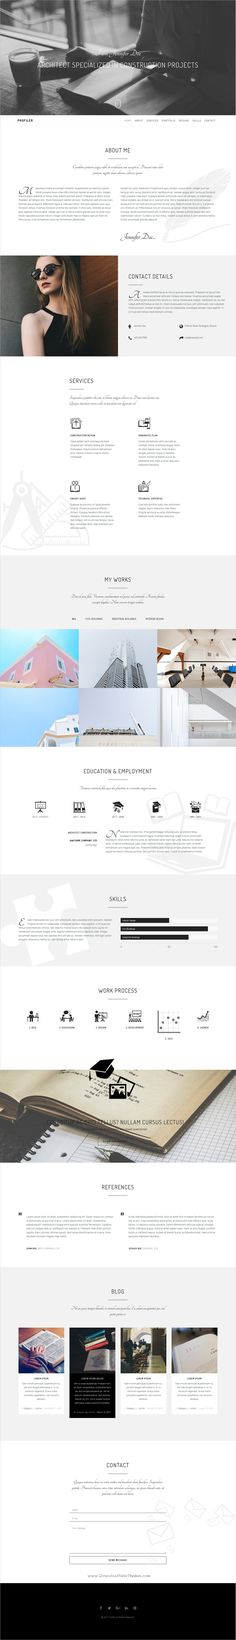 Conceito - Creative One Page Parallax HTML Template Creative - Resume Now Customer Service